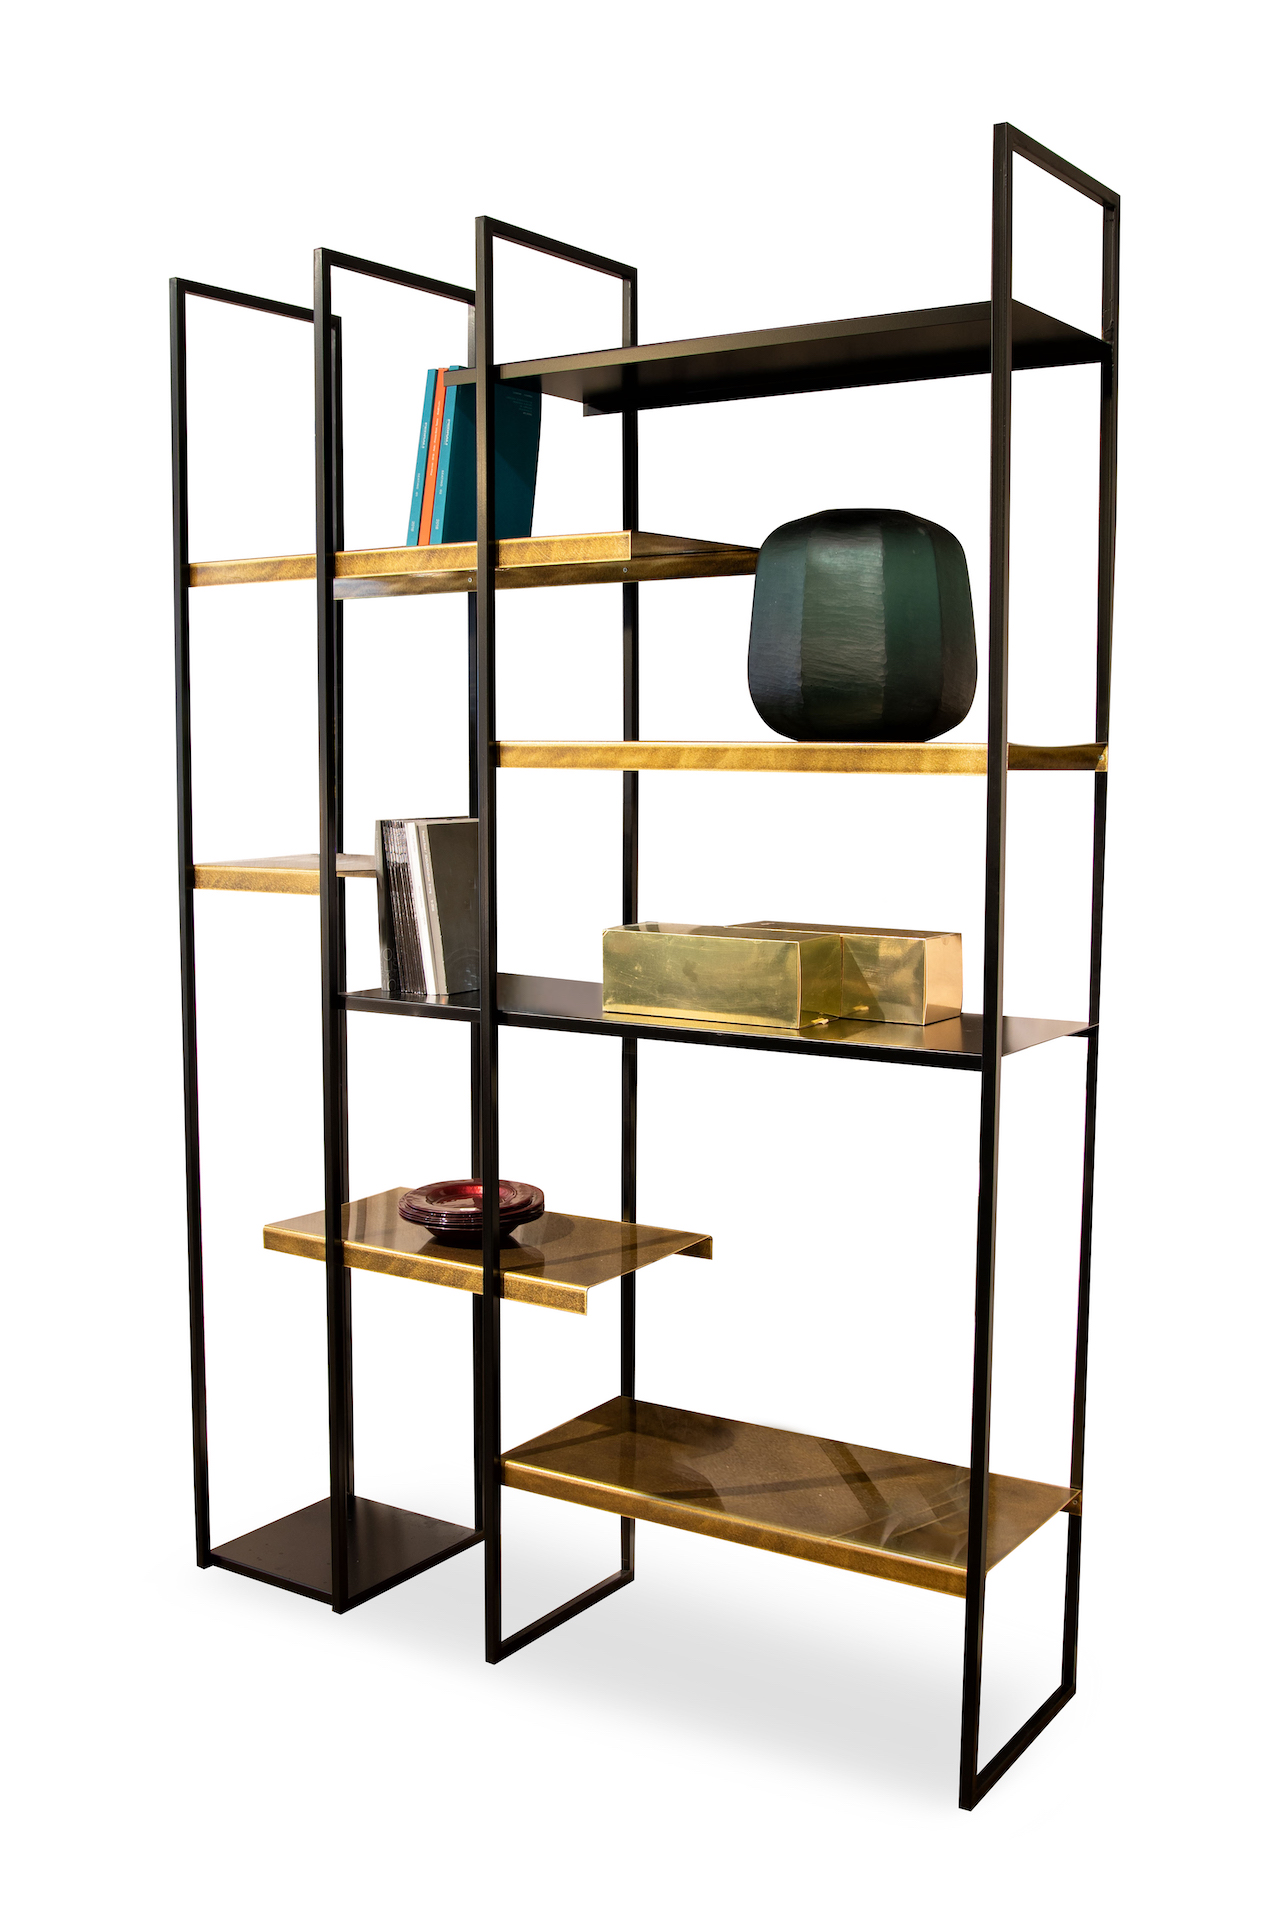 Libreria Freewall, design Riflessi Lab, Riflessi 2019.